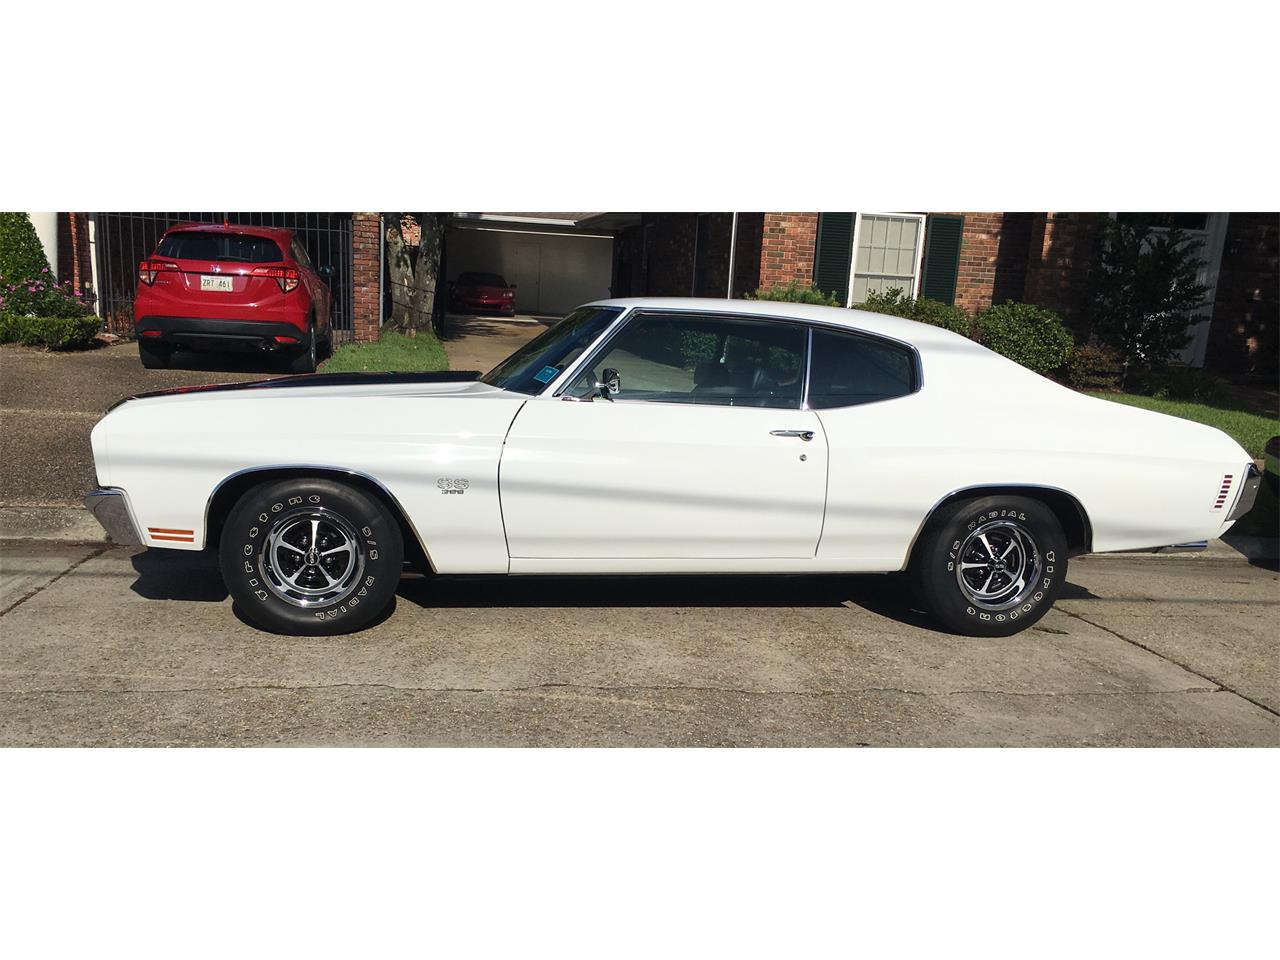 1970 Chevrolet Chevelle SS for sale in Metairie, LA